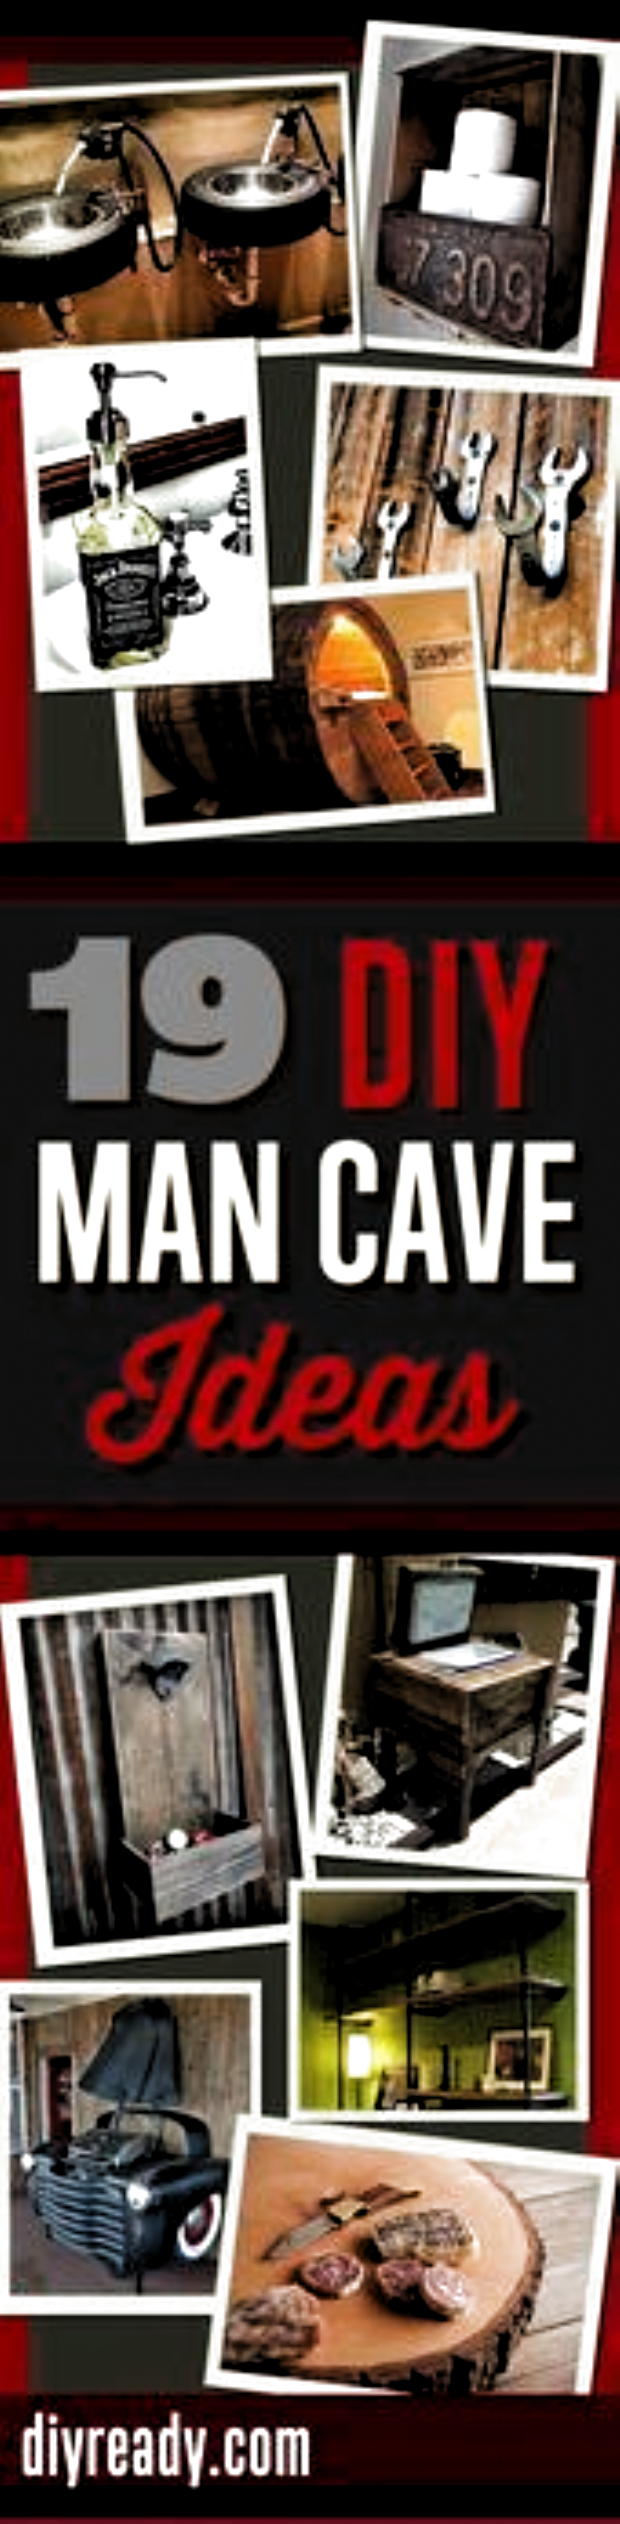 Man Cave Decor And Furniture Ideas To Try This Week,  #1001palletsawesome #Cave #Decor #furni...#1001palletsawesome #cave #decor #furni #furniture #ideas #man #week